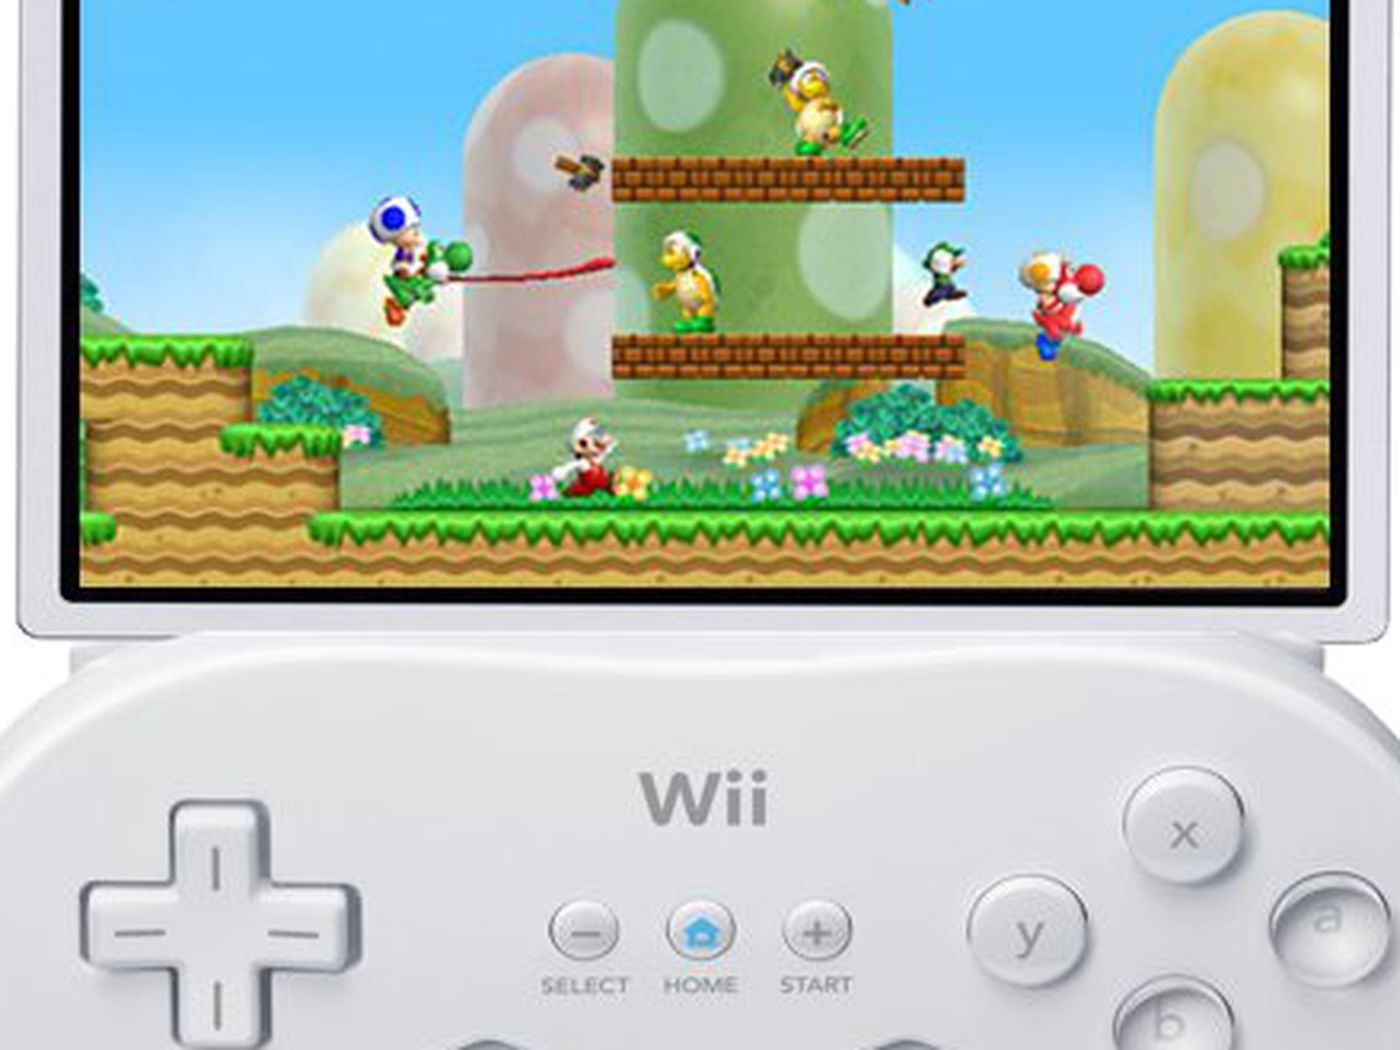 Nintendo's Wii successor (Project Cafe?) and other